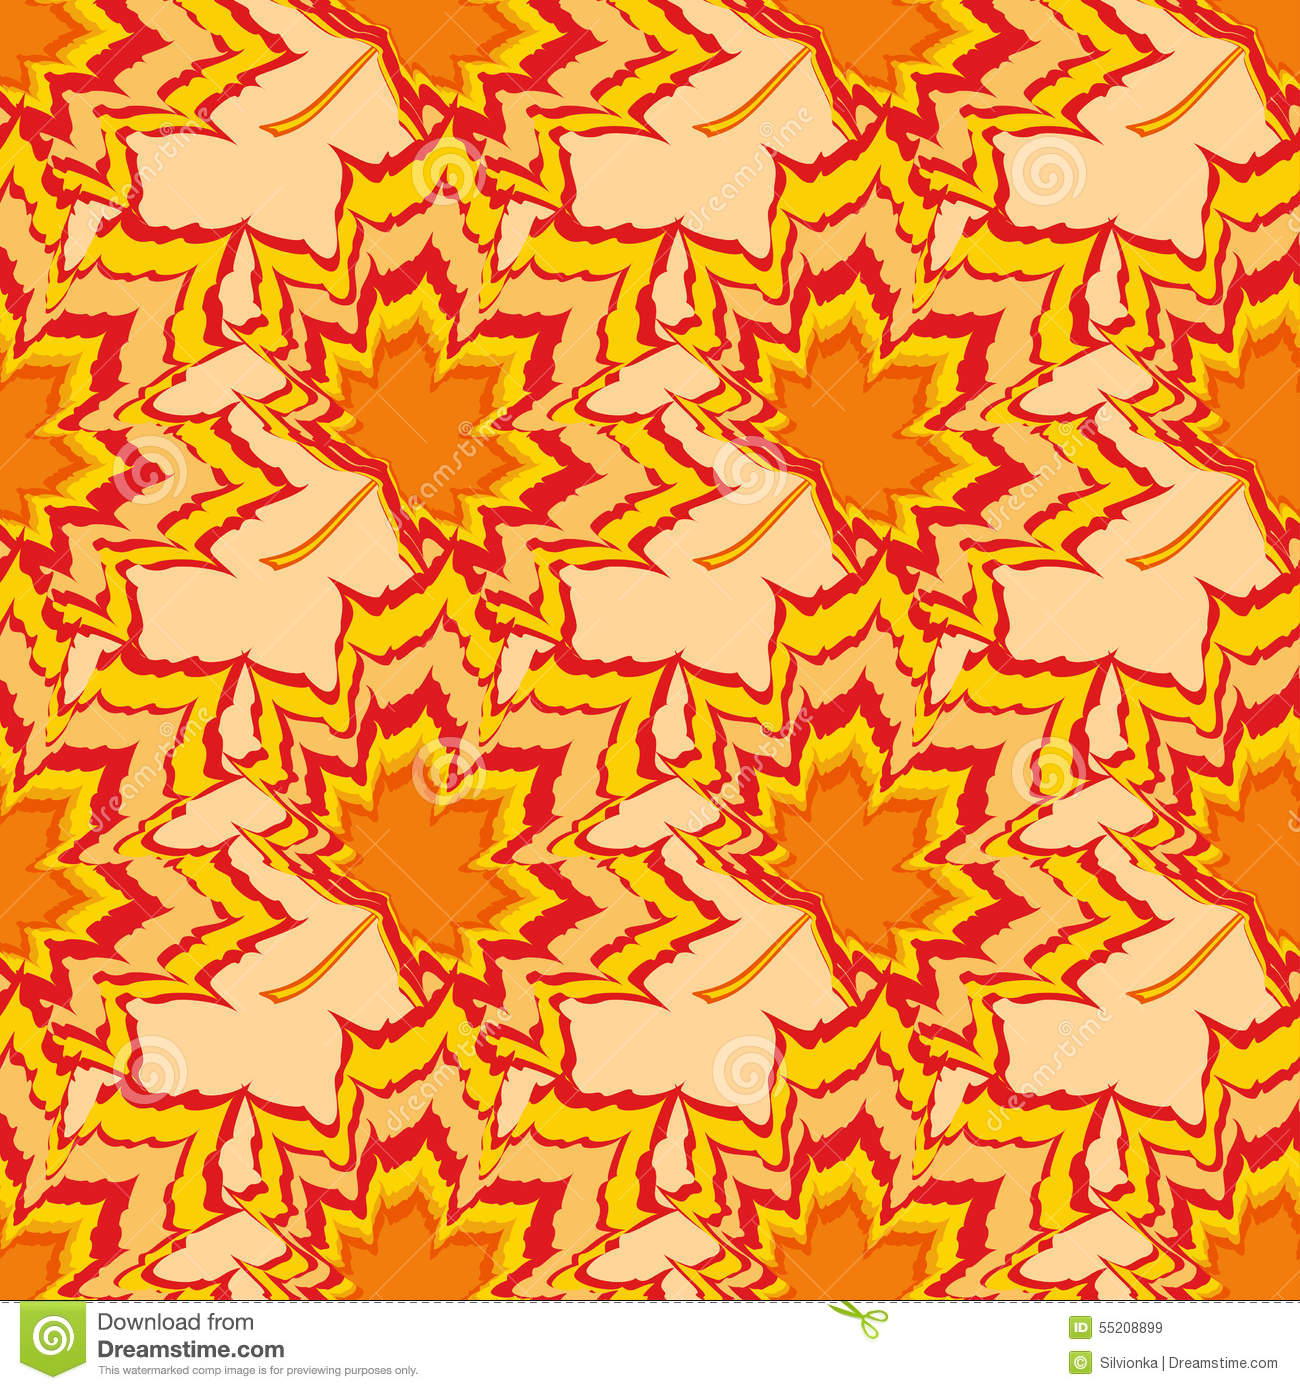 red leaves wallpaper pattern - photo #15